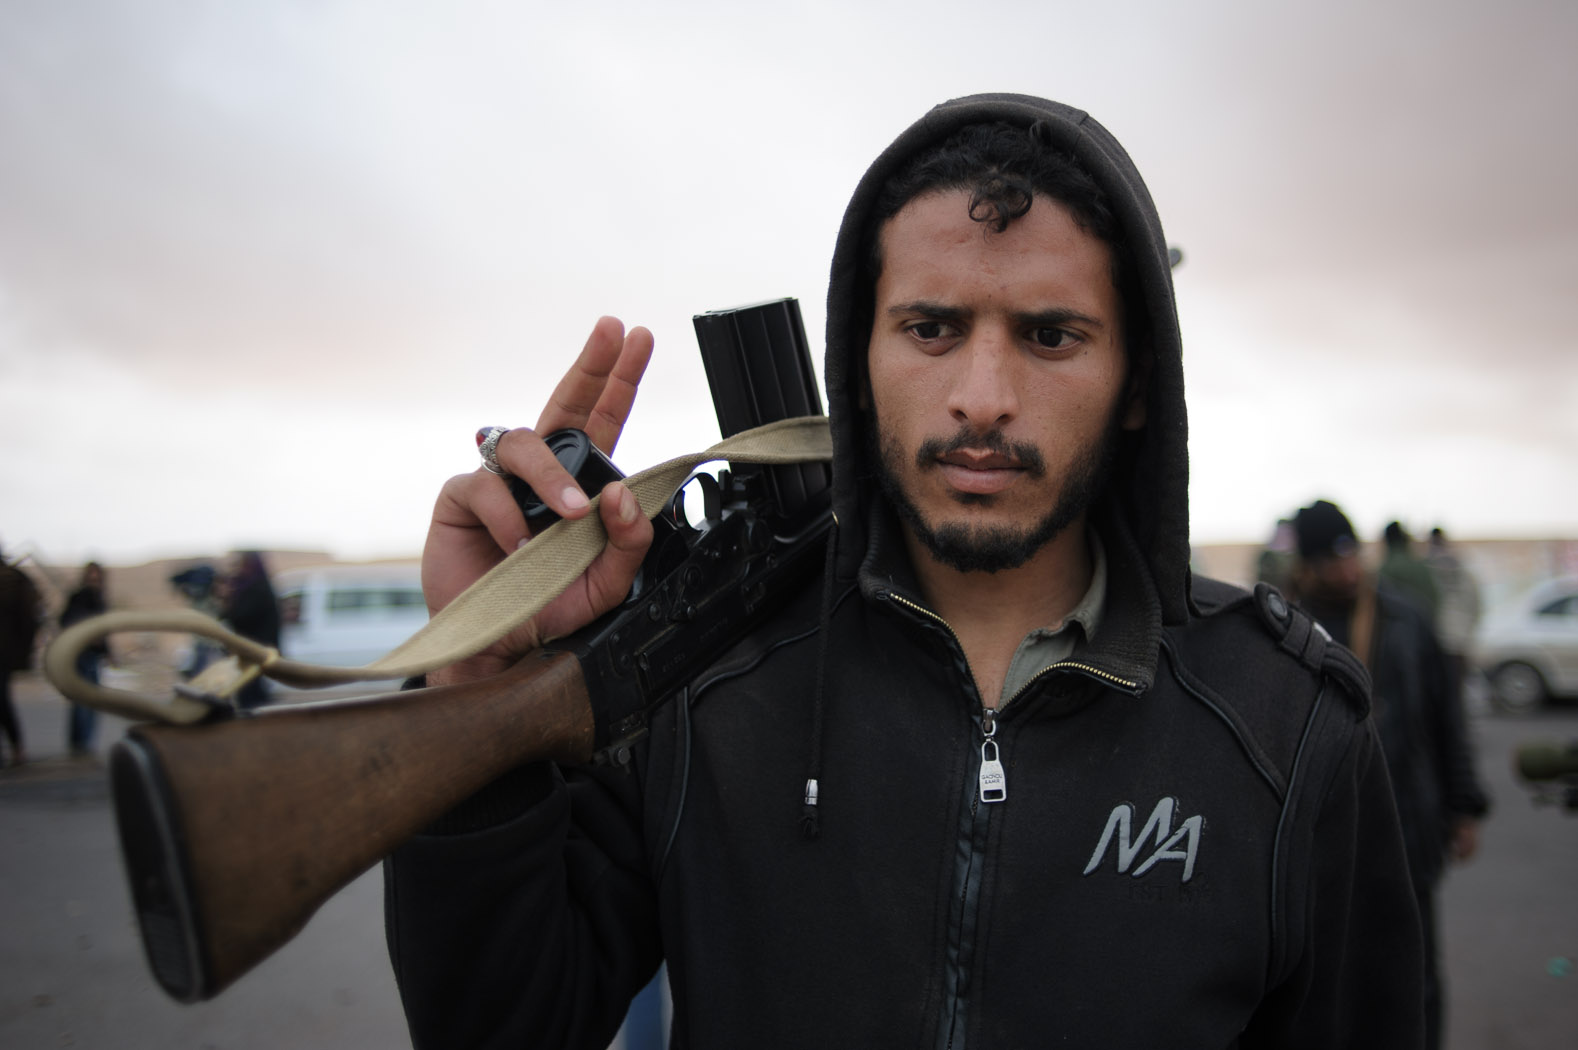 A fighter carries his gun, wearing a hooded sweater.